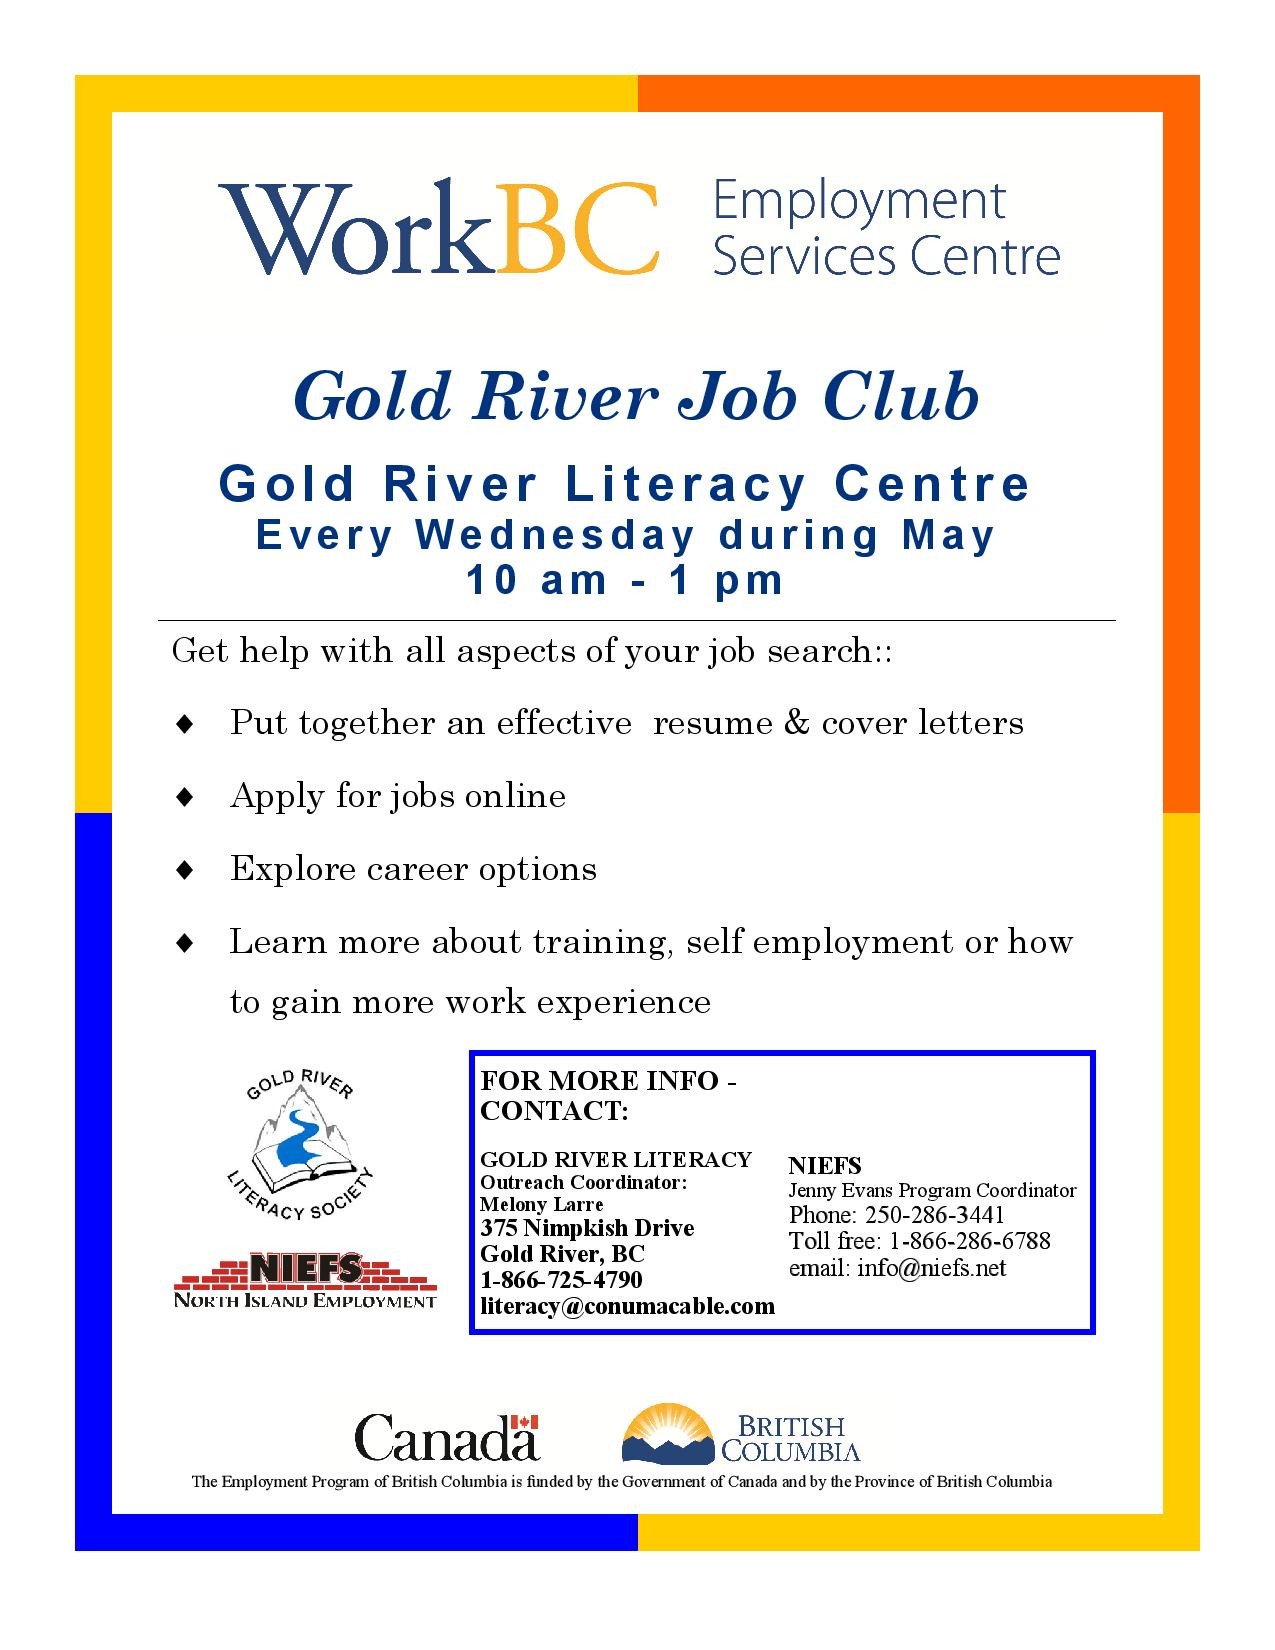 goldriver job club ad